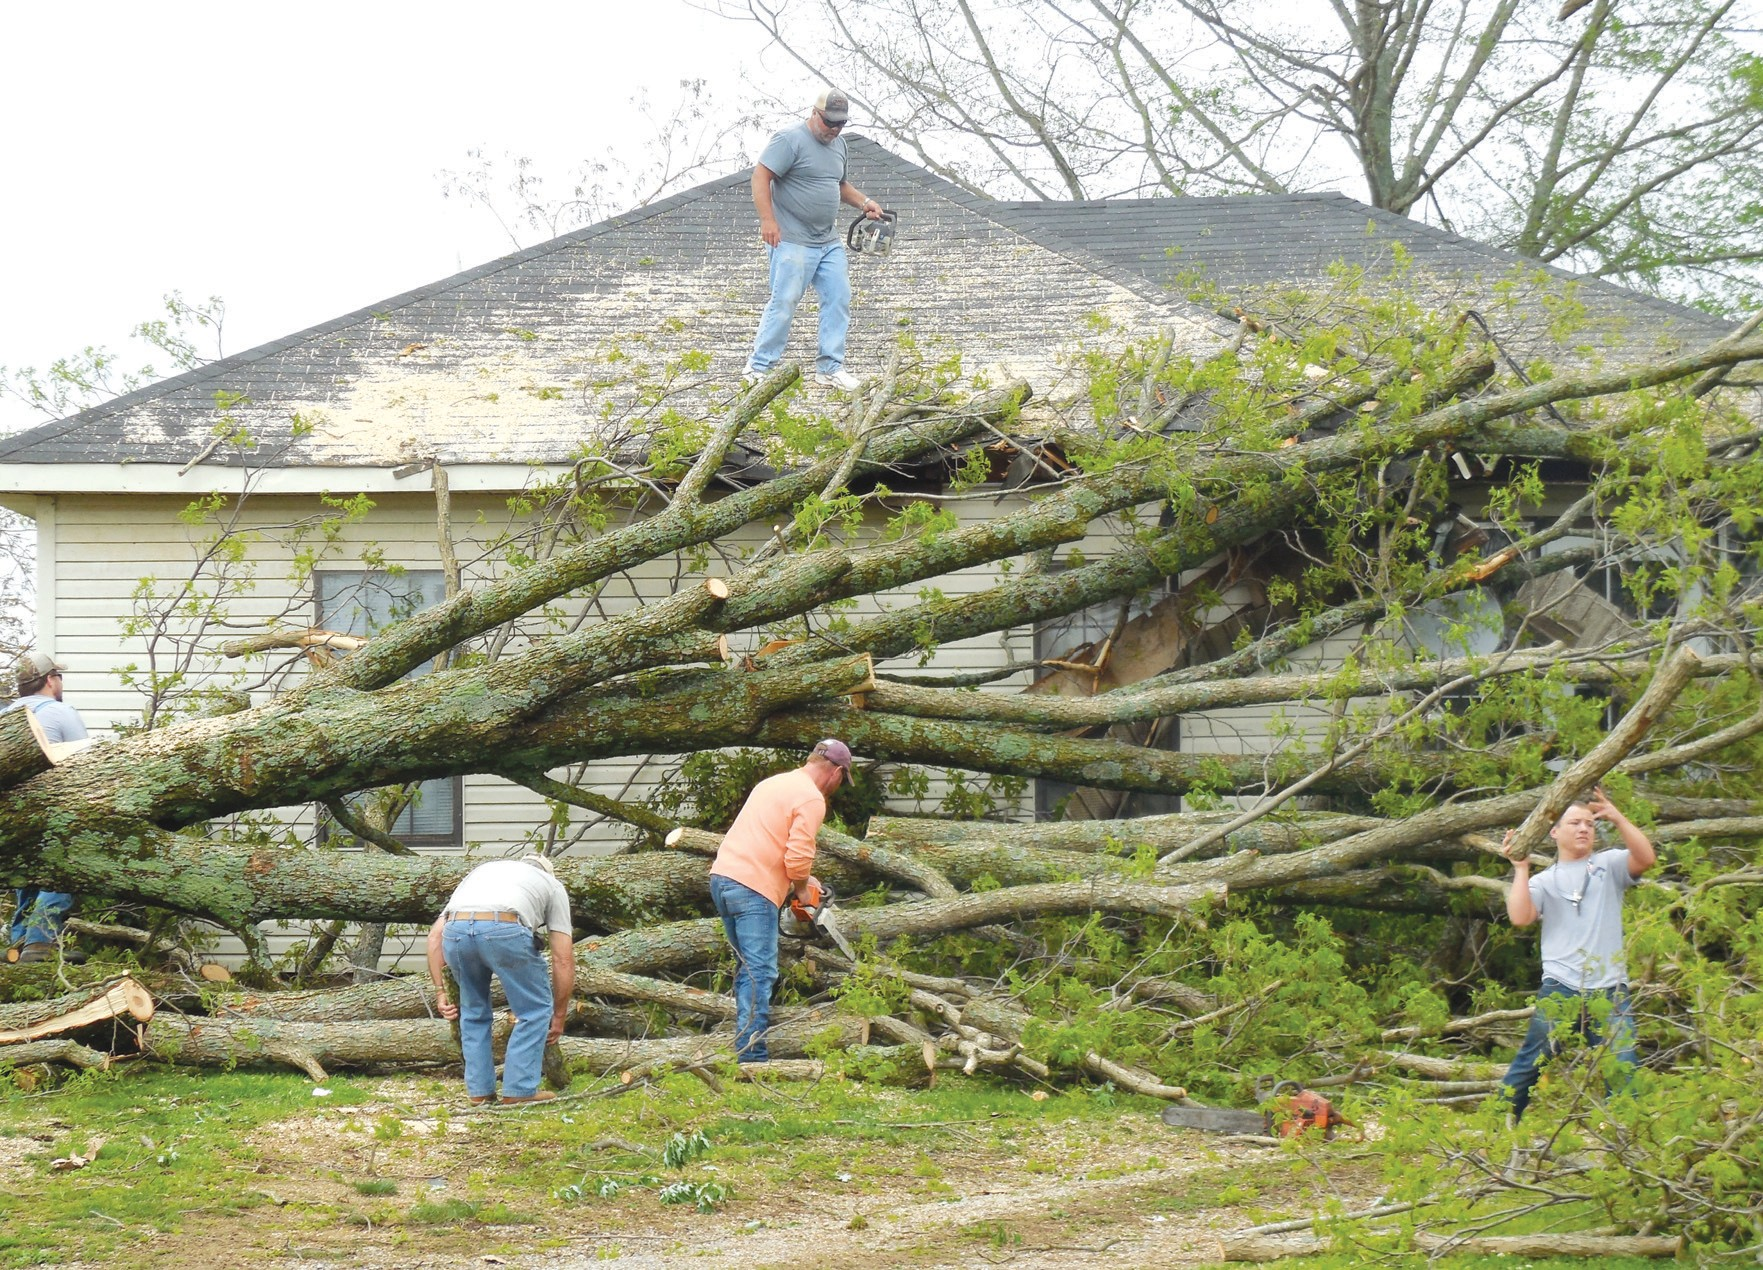 Multiple houses on Airport Road, including this one, were damaged during the Tuesday morning storms. Officials, volunteers, and family members of those affected assisted in the clean up throughout the day Tuesday.